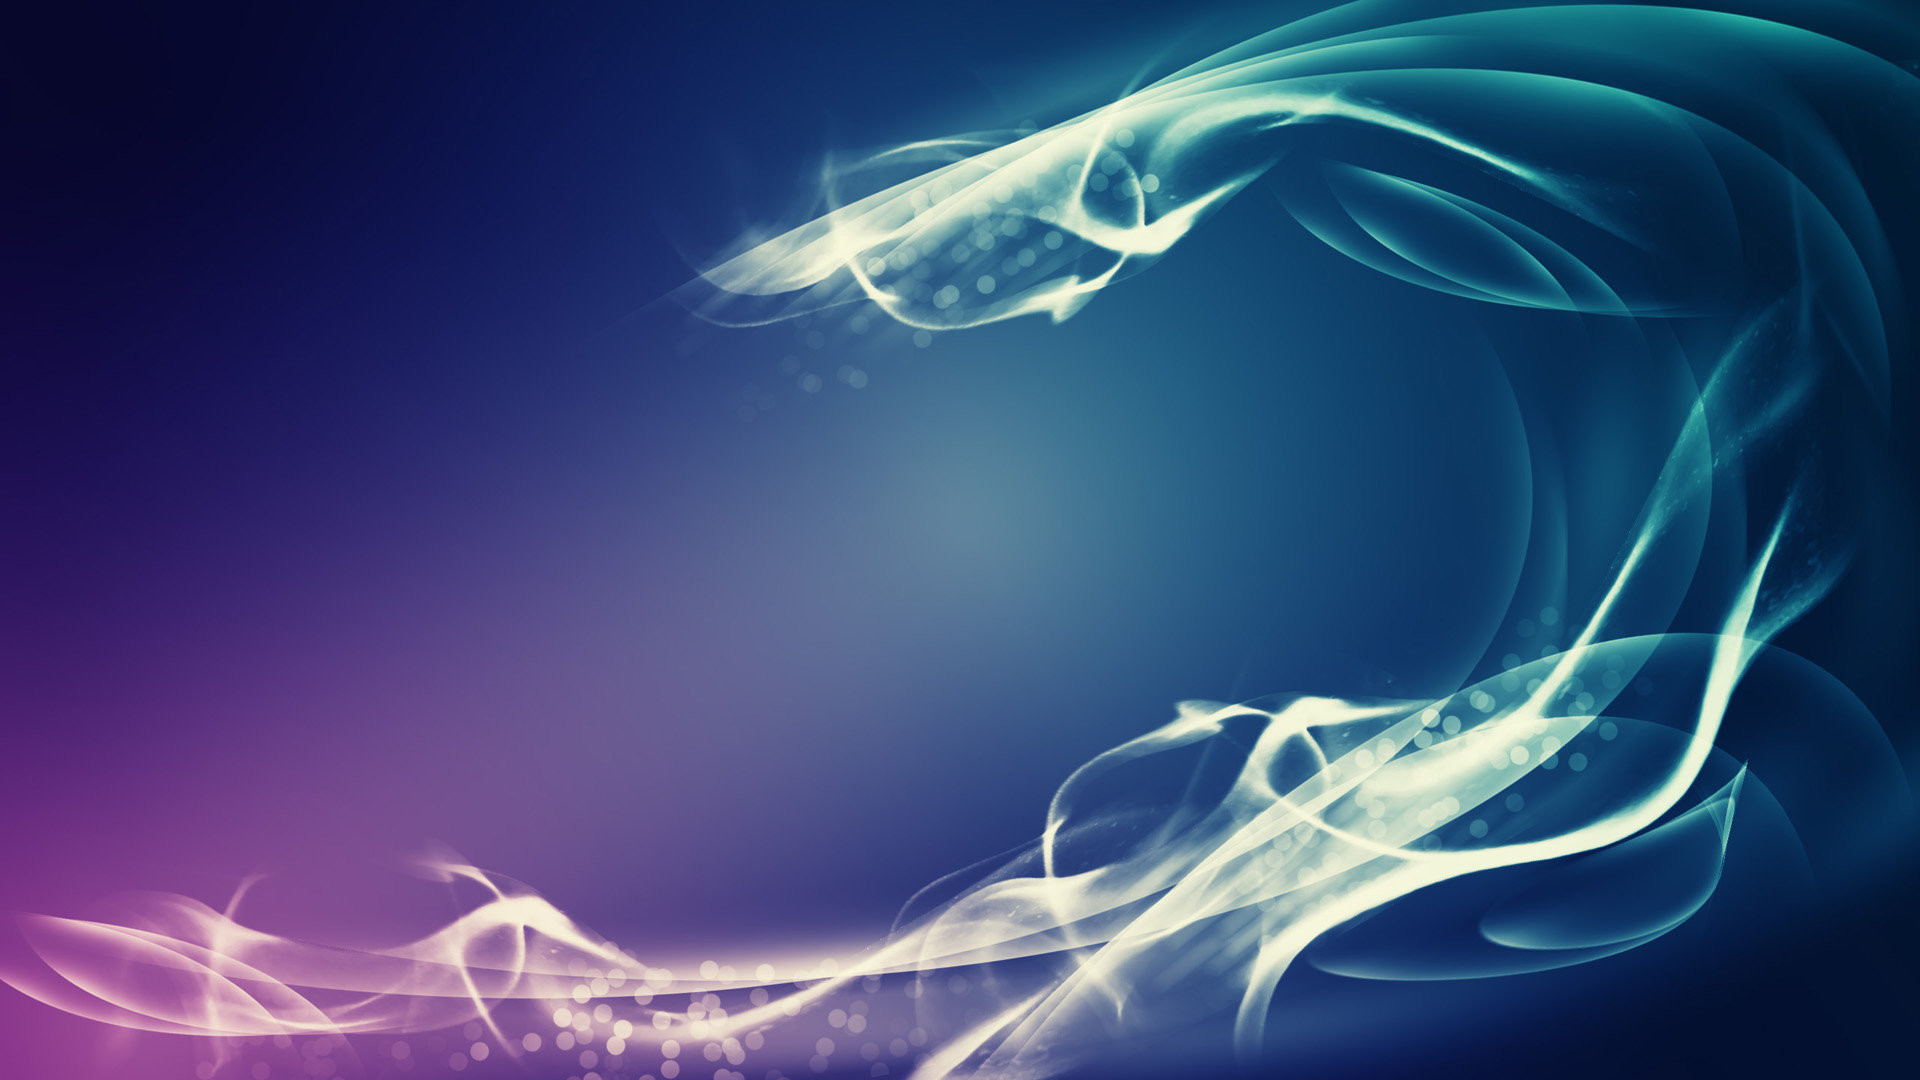 Abstract Blue Coshage Wallpaper   Full HD Wallpapers .